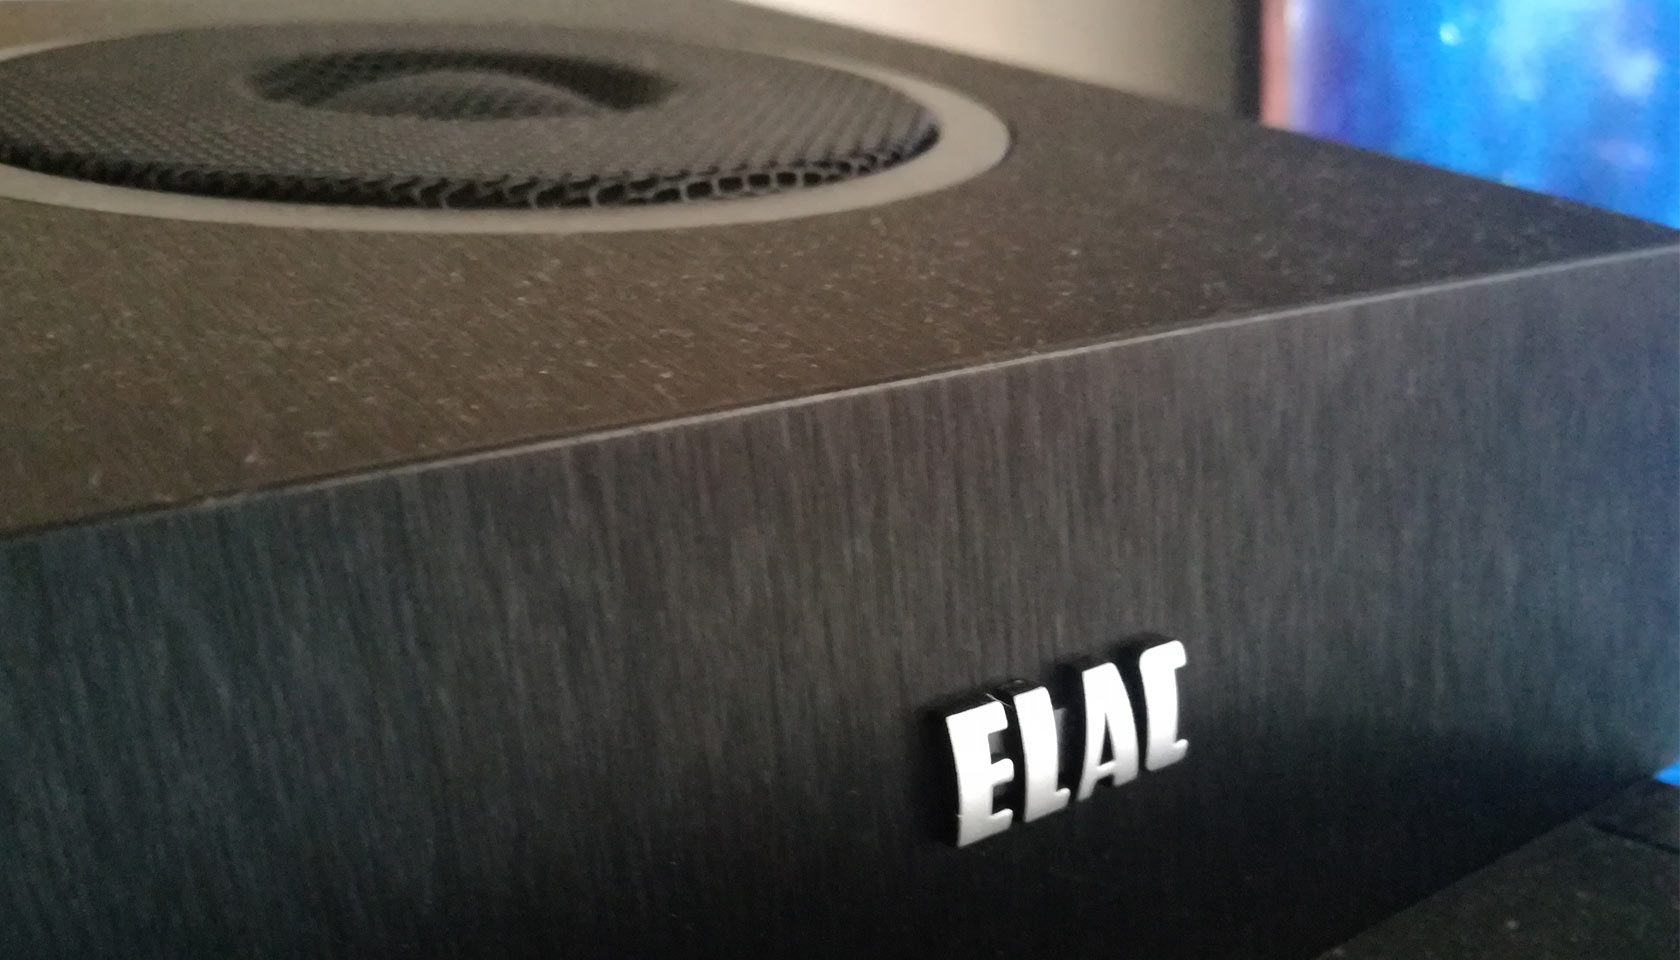 Elac Debut A4 Dolby Atmos Upfiring Speakers Review | IvanYolo